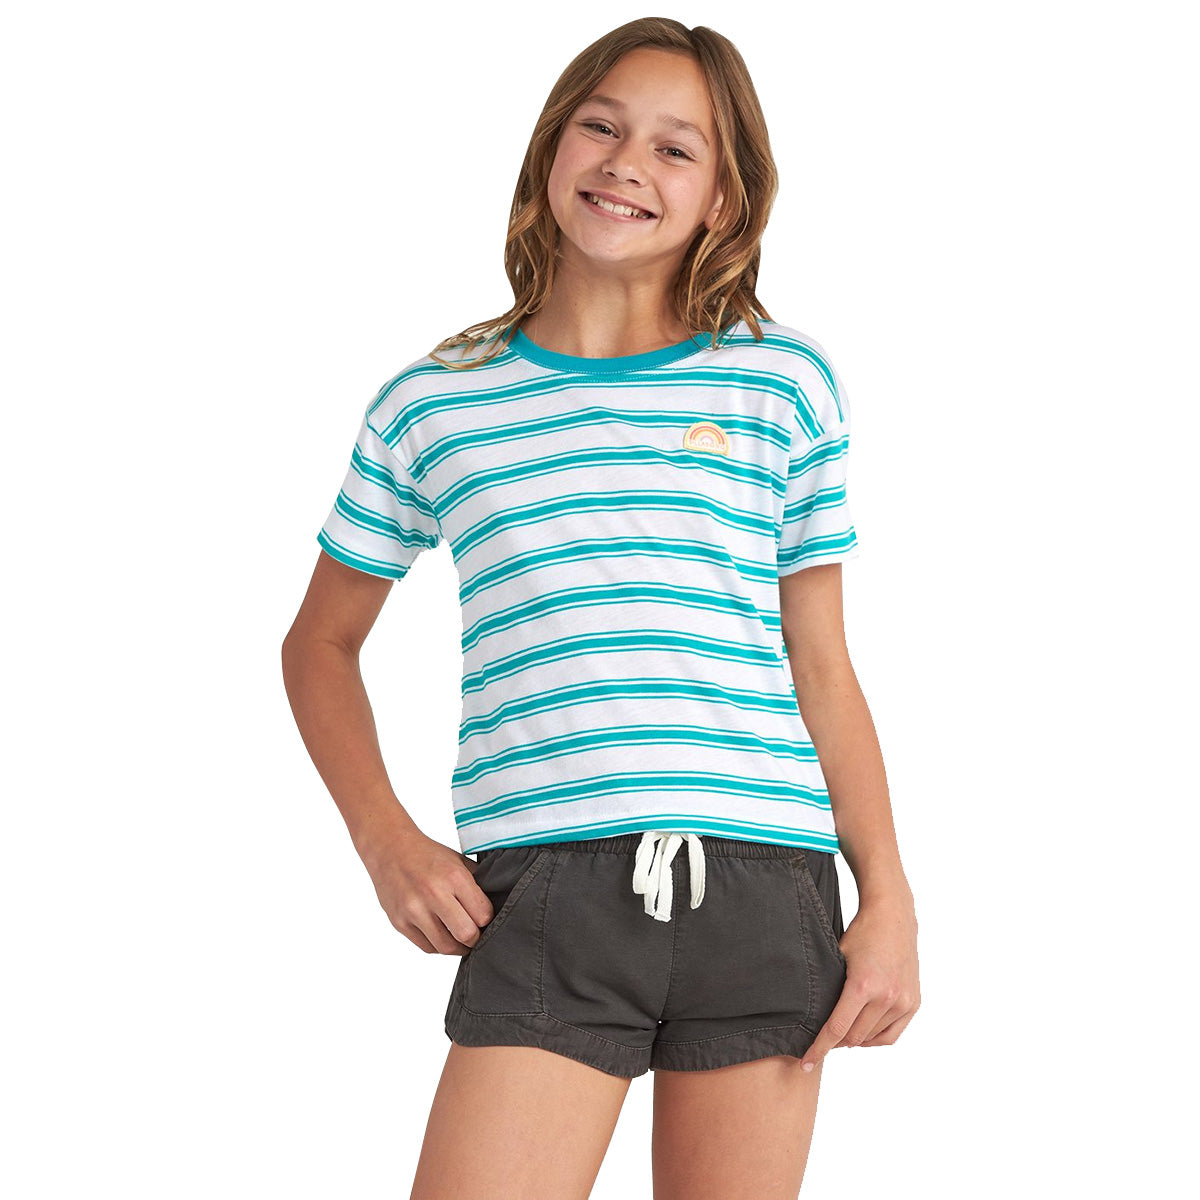 Billabong Beach Babe Youth Girls Short-Sleeve Shirts (USED LIKE NEW / LAST CALL SALE)